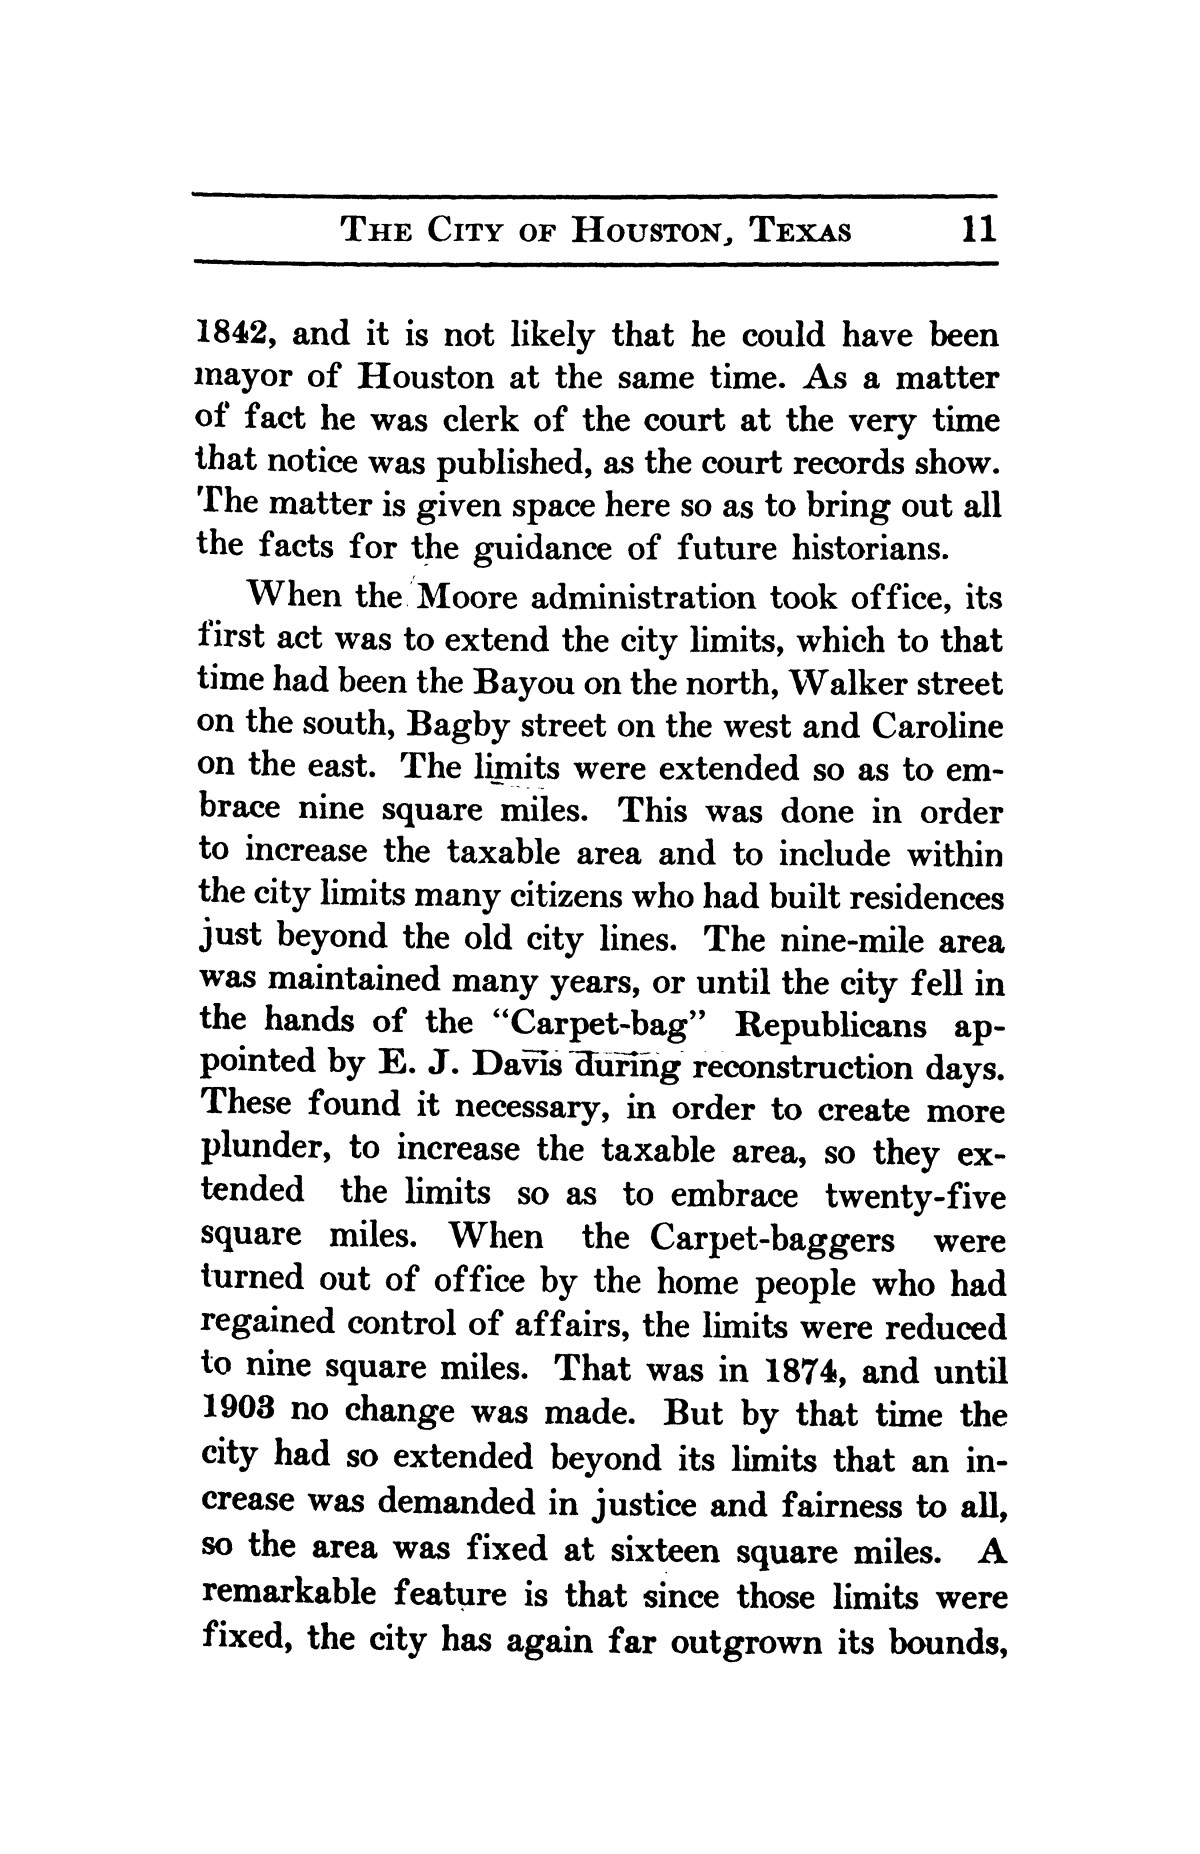 A thumb-nail history of the city of Houston, Texas, from its founding in 1836 to the year 1912                                                                                                      11